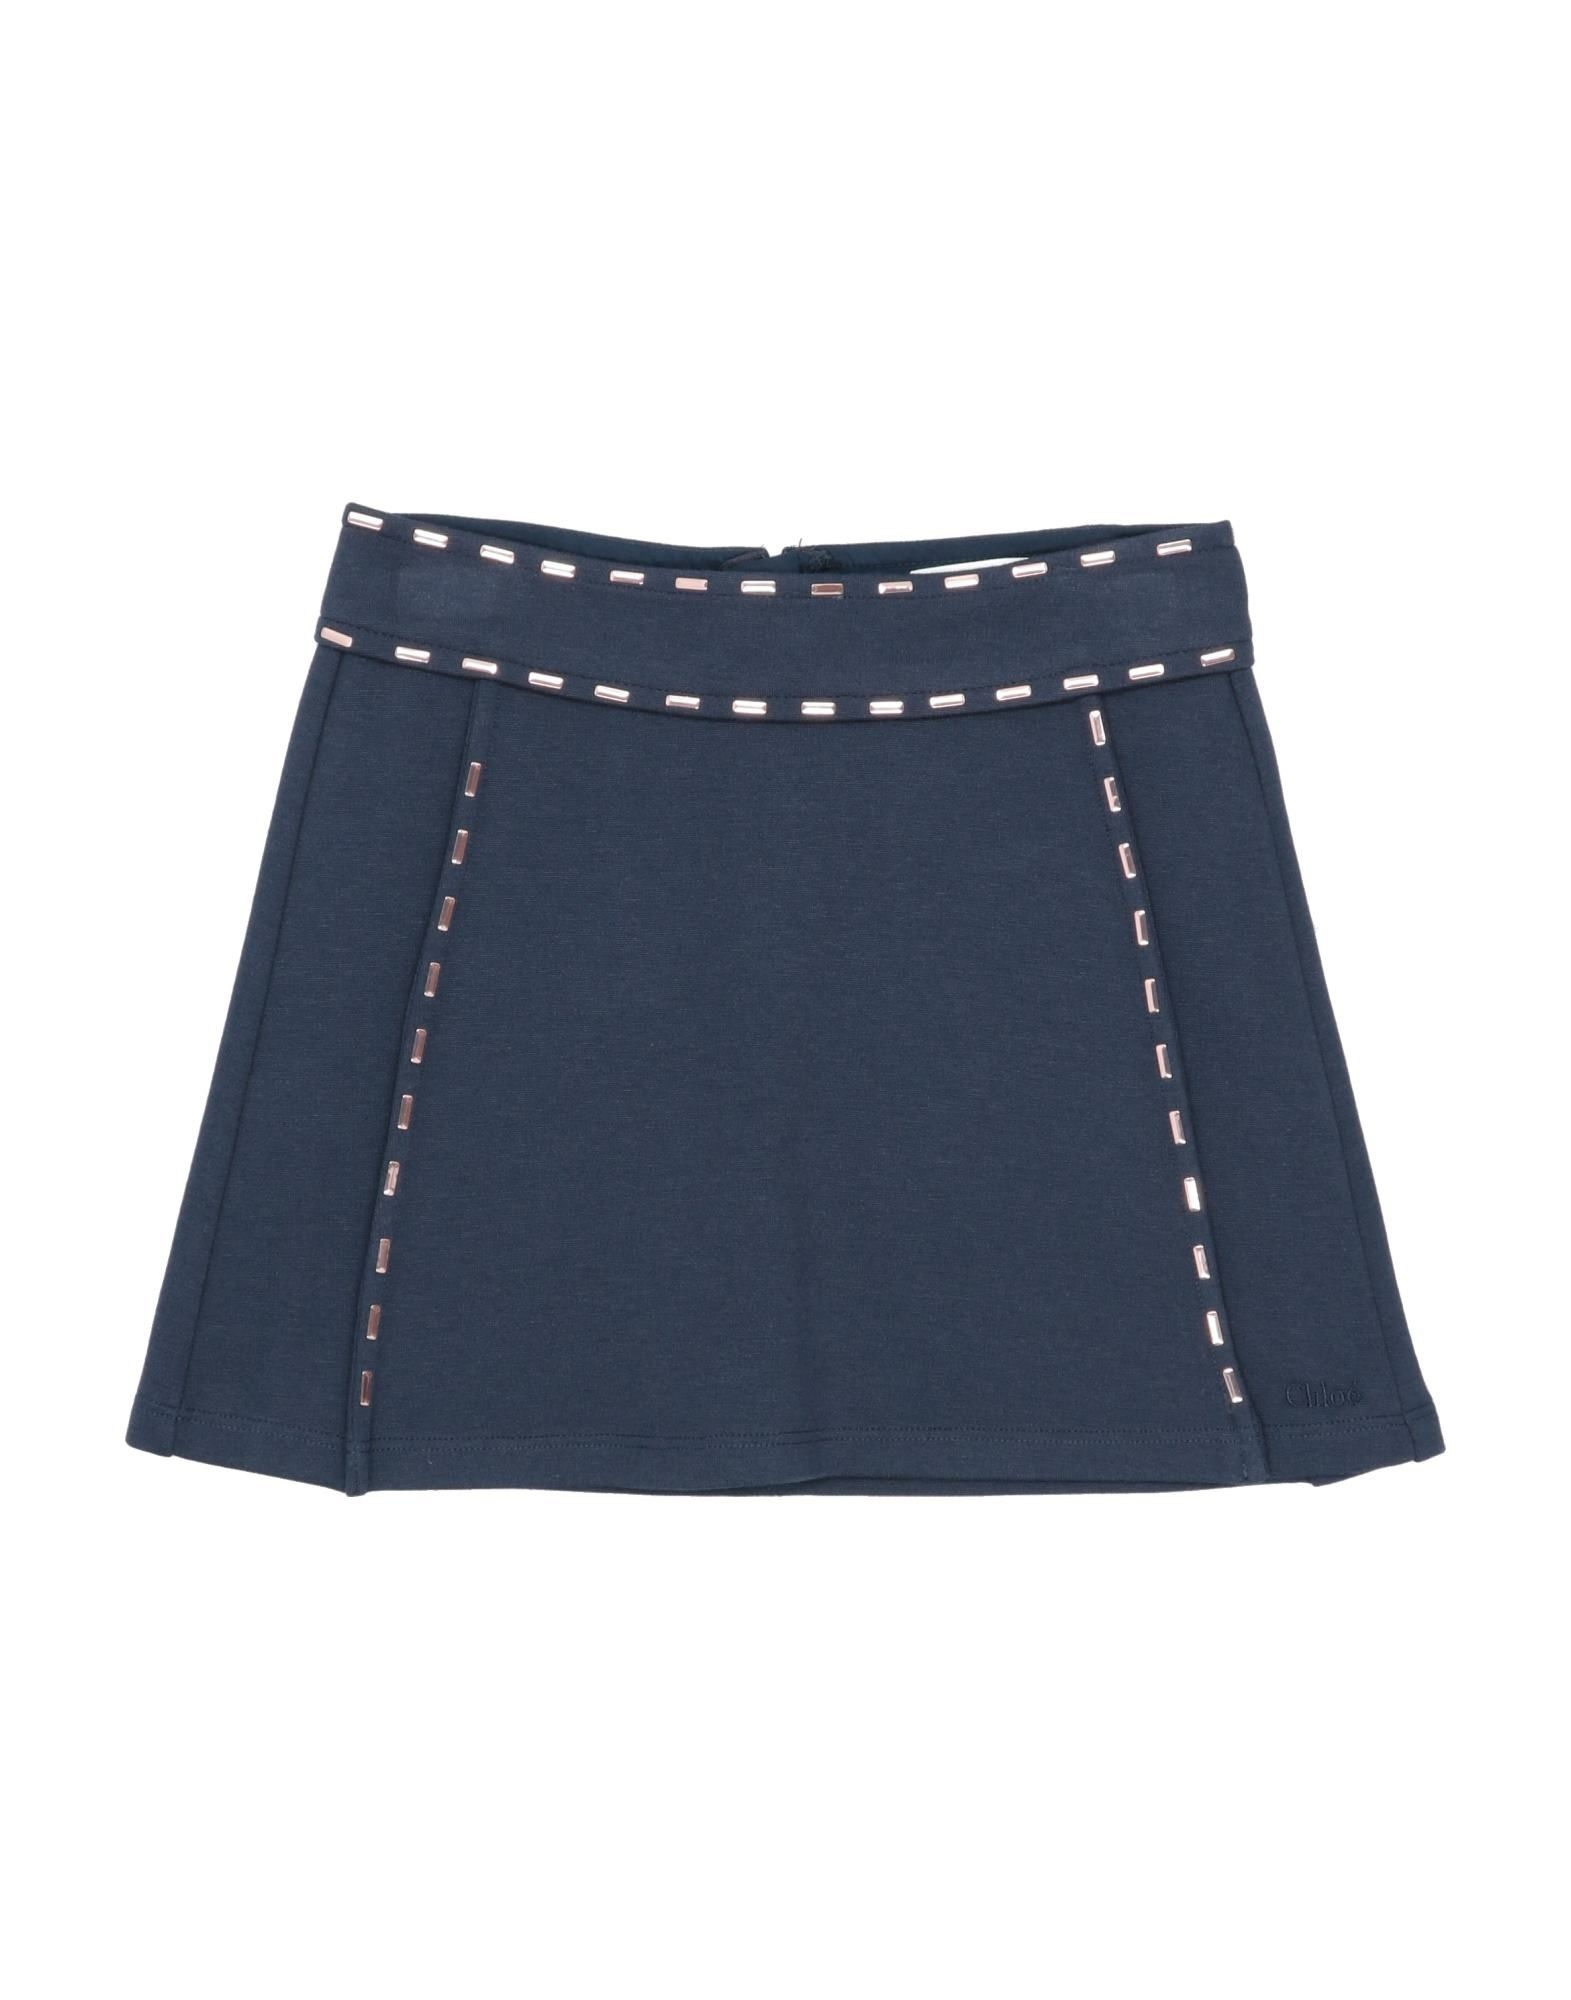 CHLOÉ Skirts. jersey, metal applications, logo, solid color, no pockets, rear closure, zipper closure, wash at 30degree c, do not dry clean, iron at 110degree c max, do not bleach, do not tumble dry, unlined, stretch, large sized. 41% Cotton, 41% Modal, 10% Elastane, 8% Polyamide